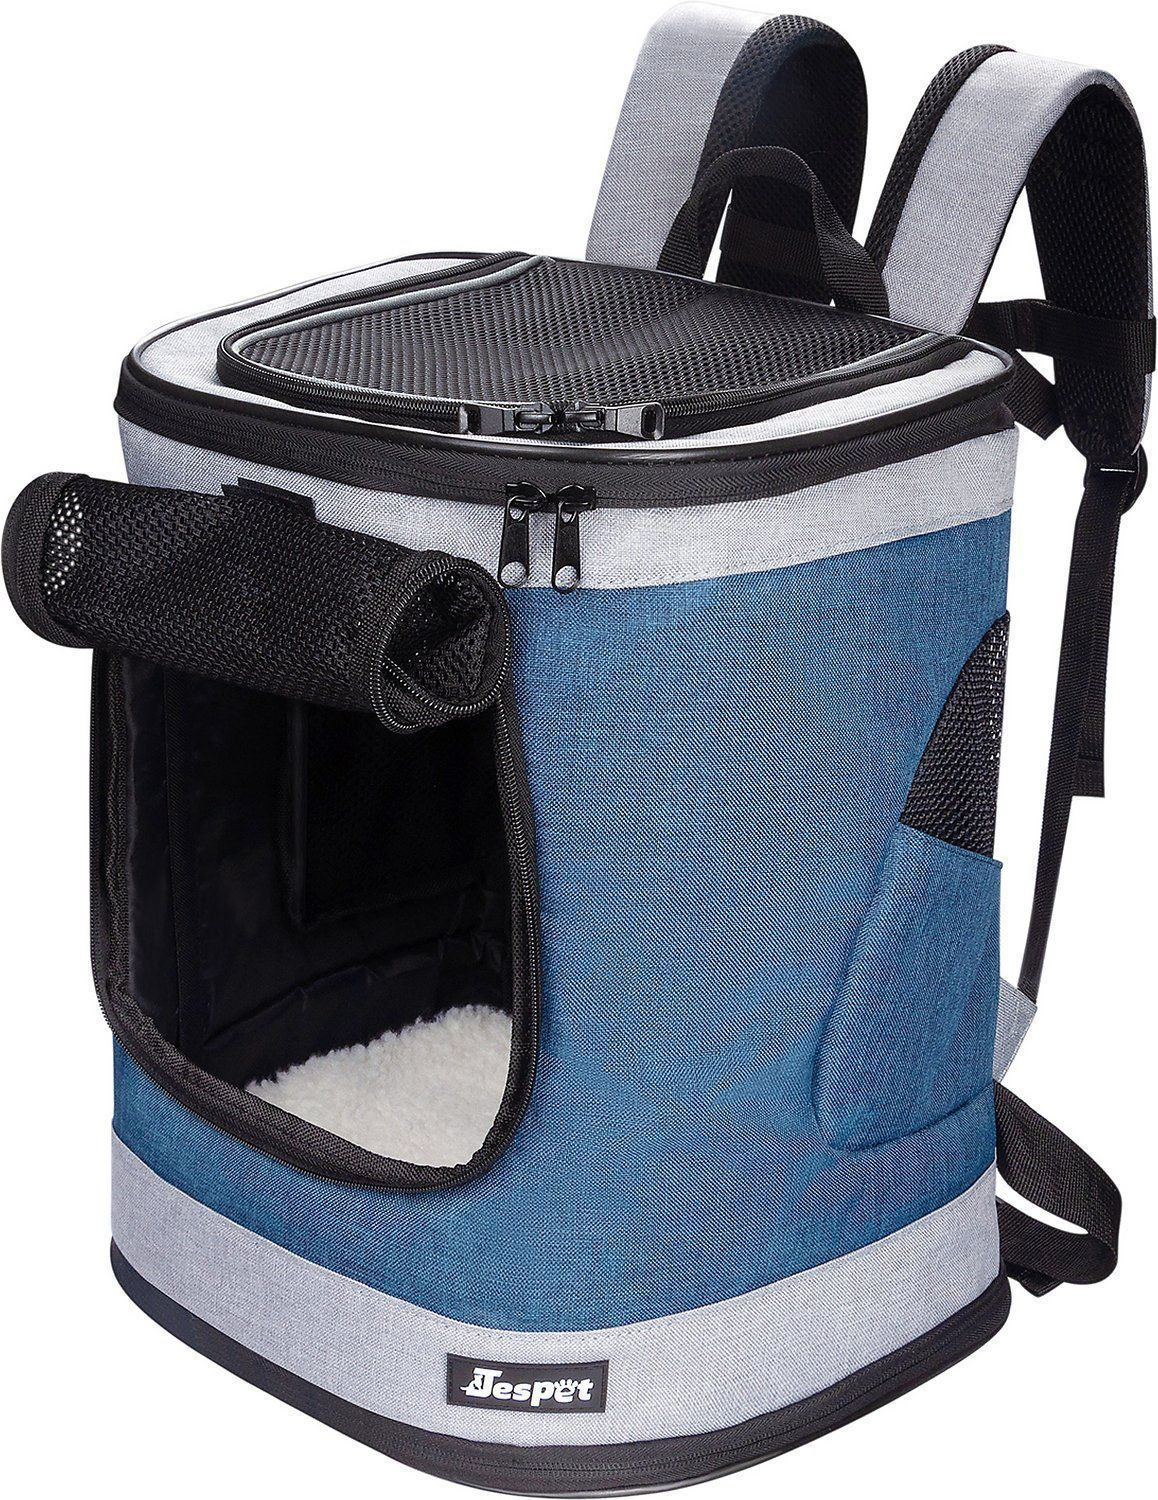 jespet dog cat carrier backpack dark blue 17-in